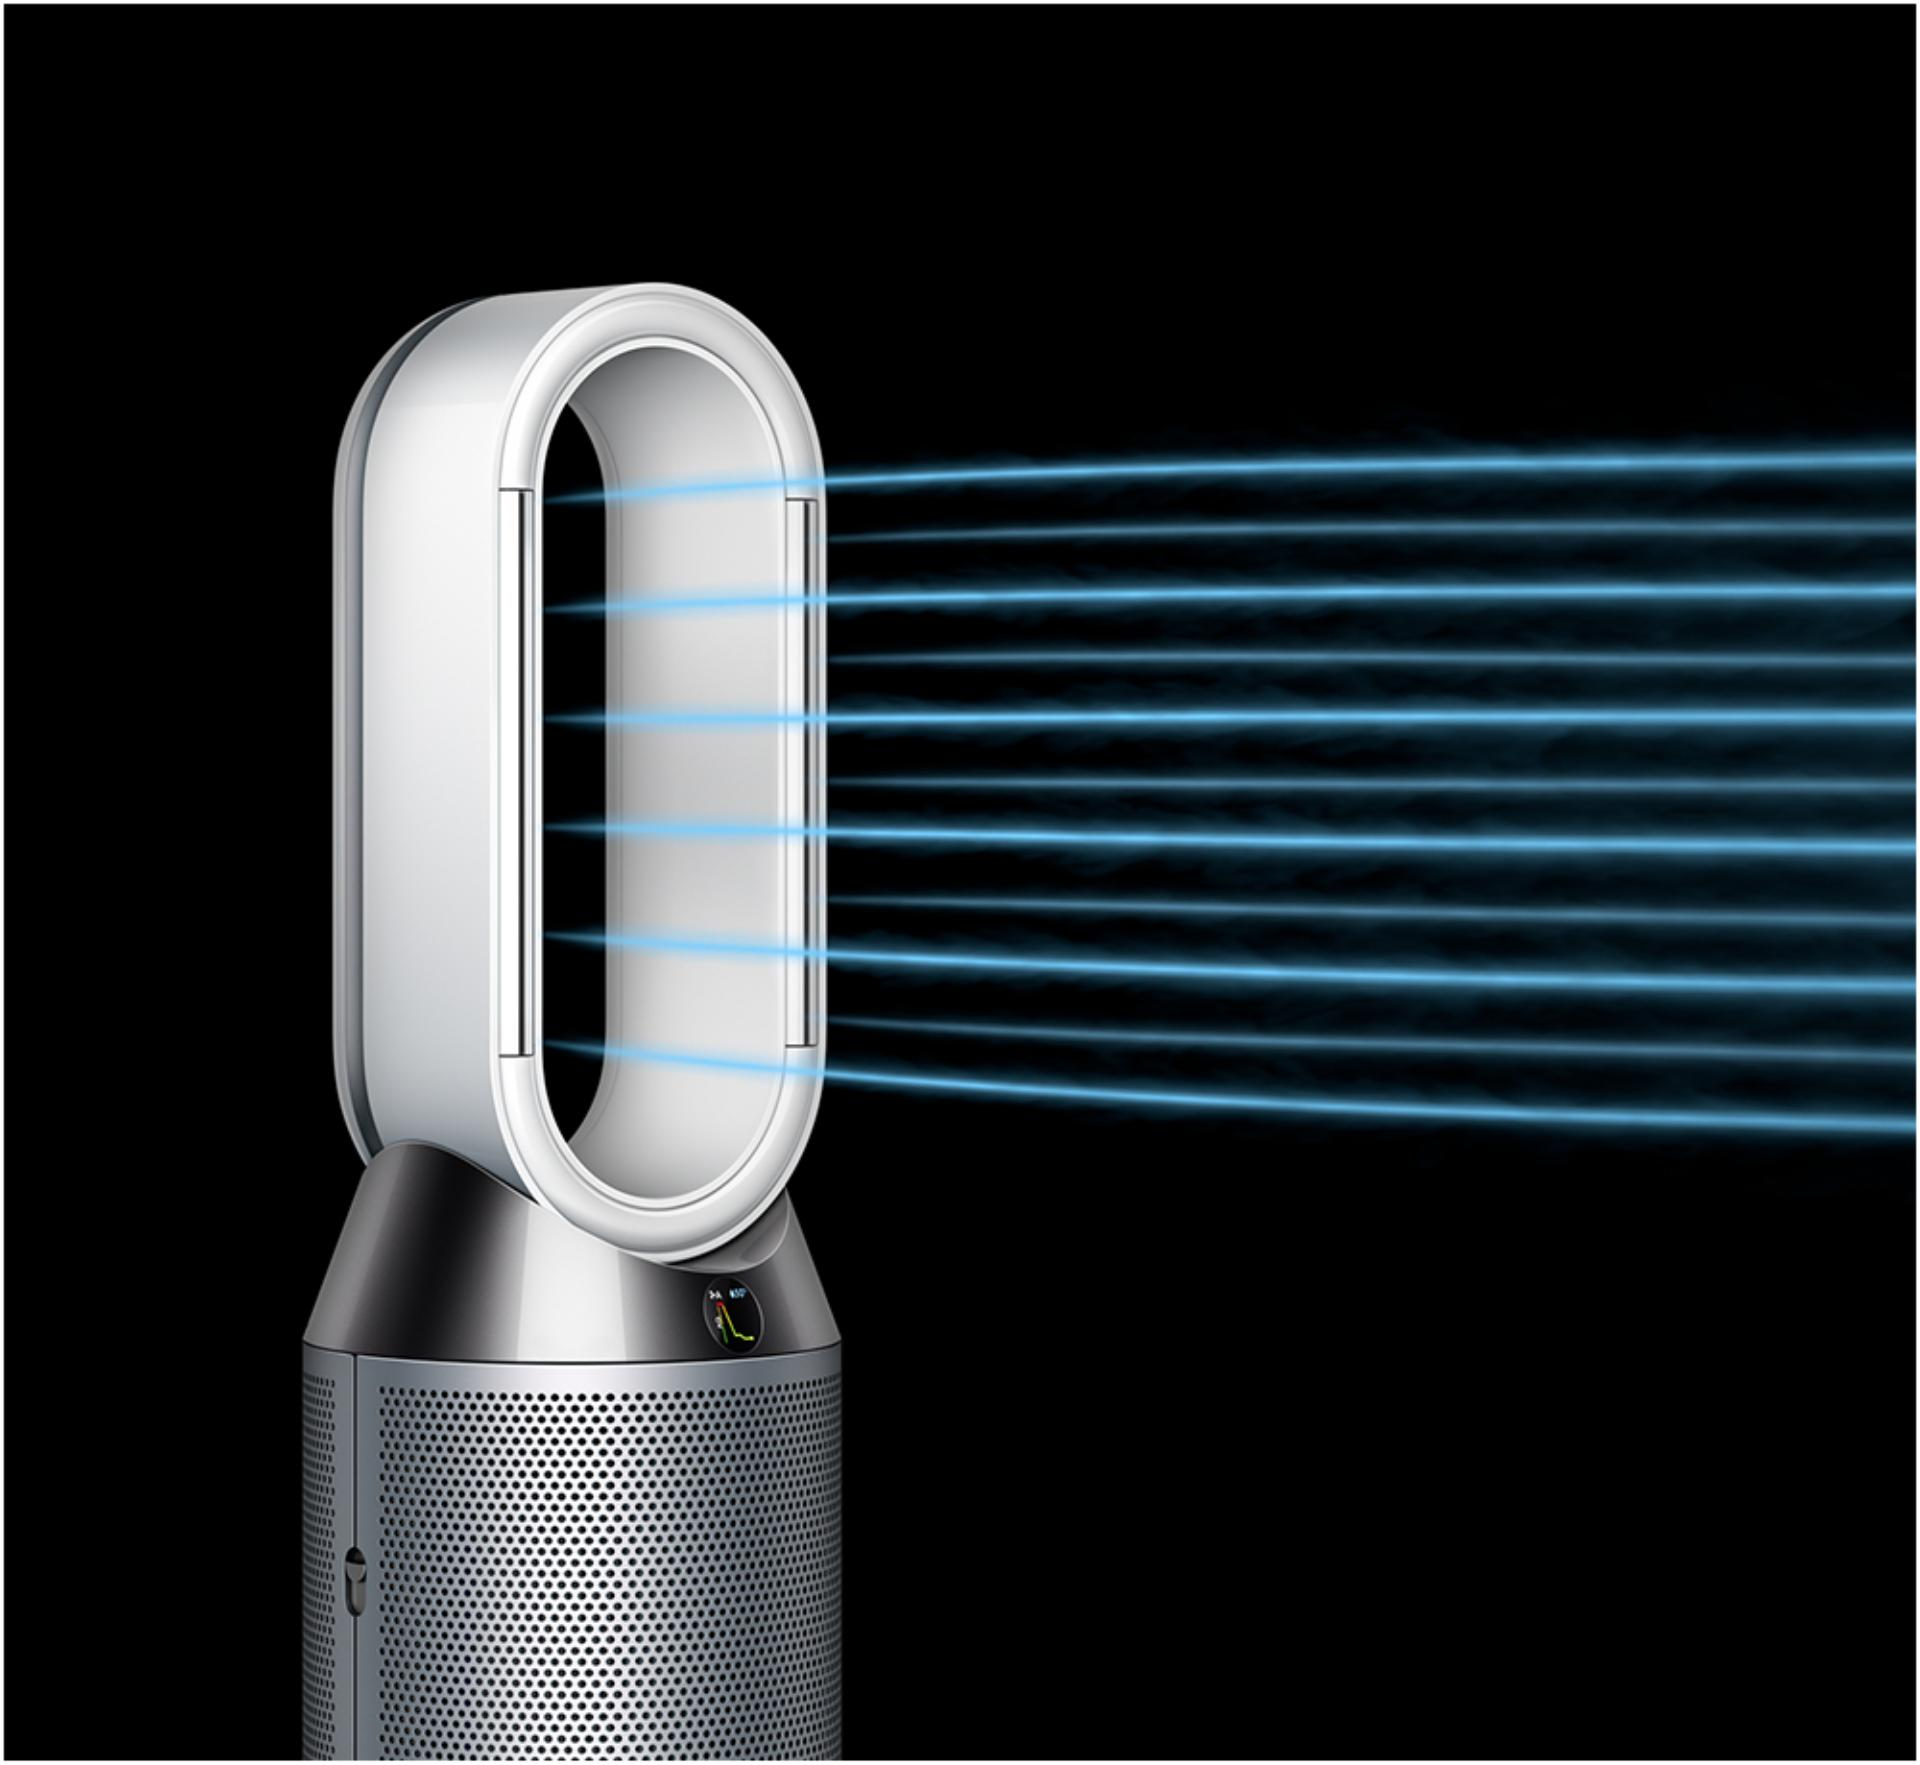 The Dyson purifier humidifier in Fan mode